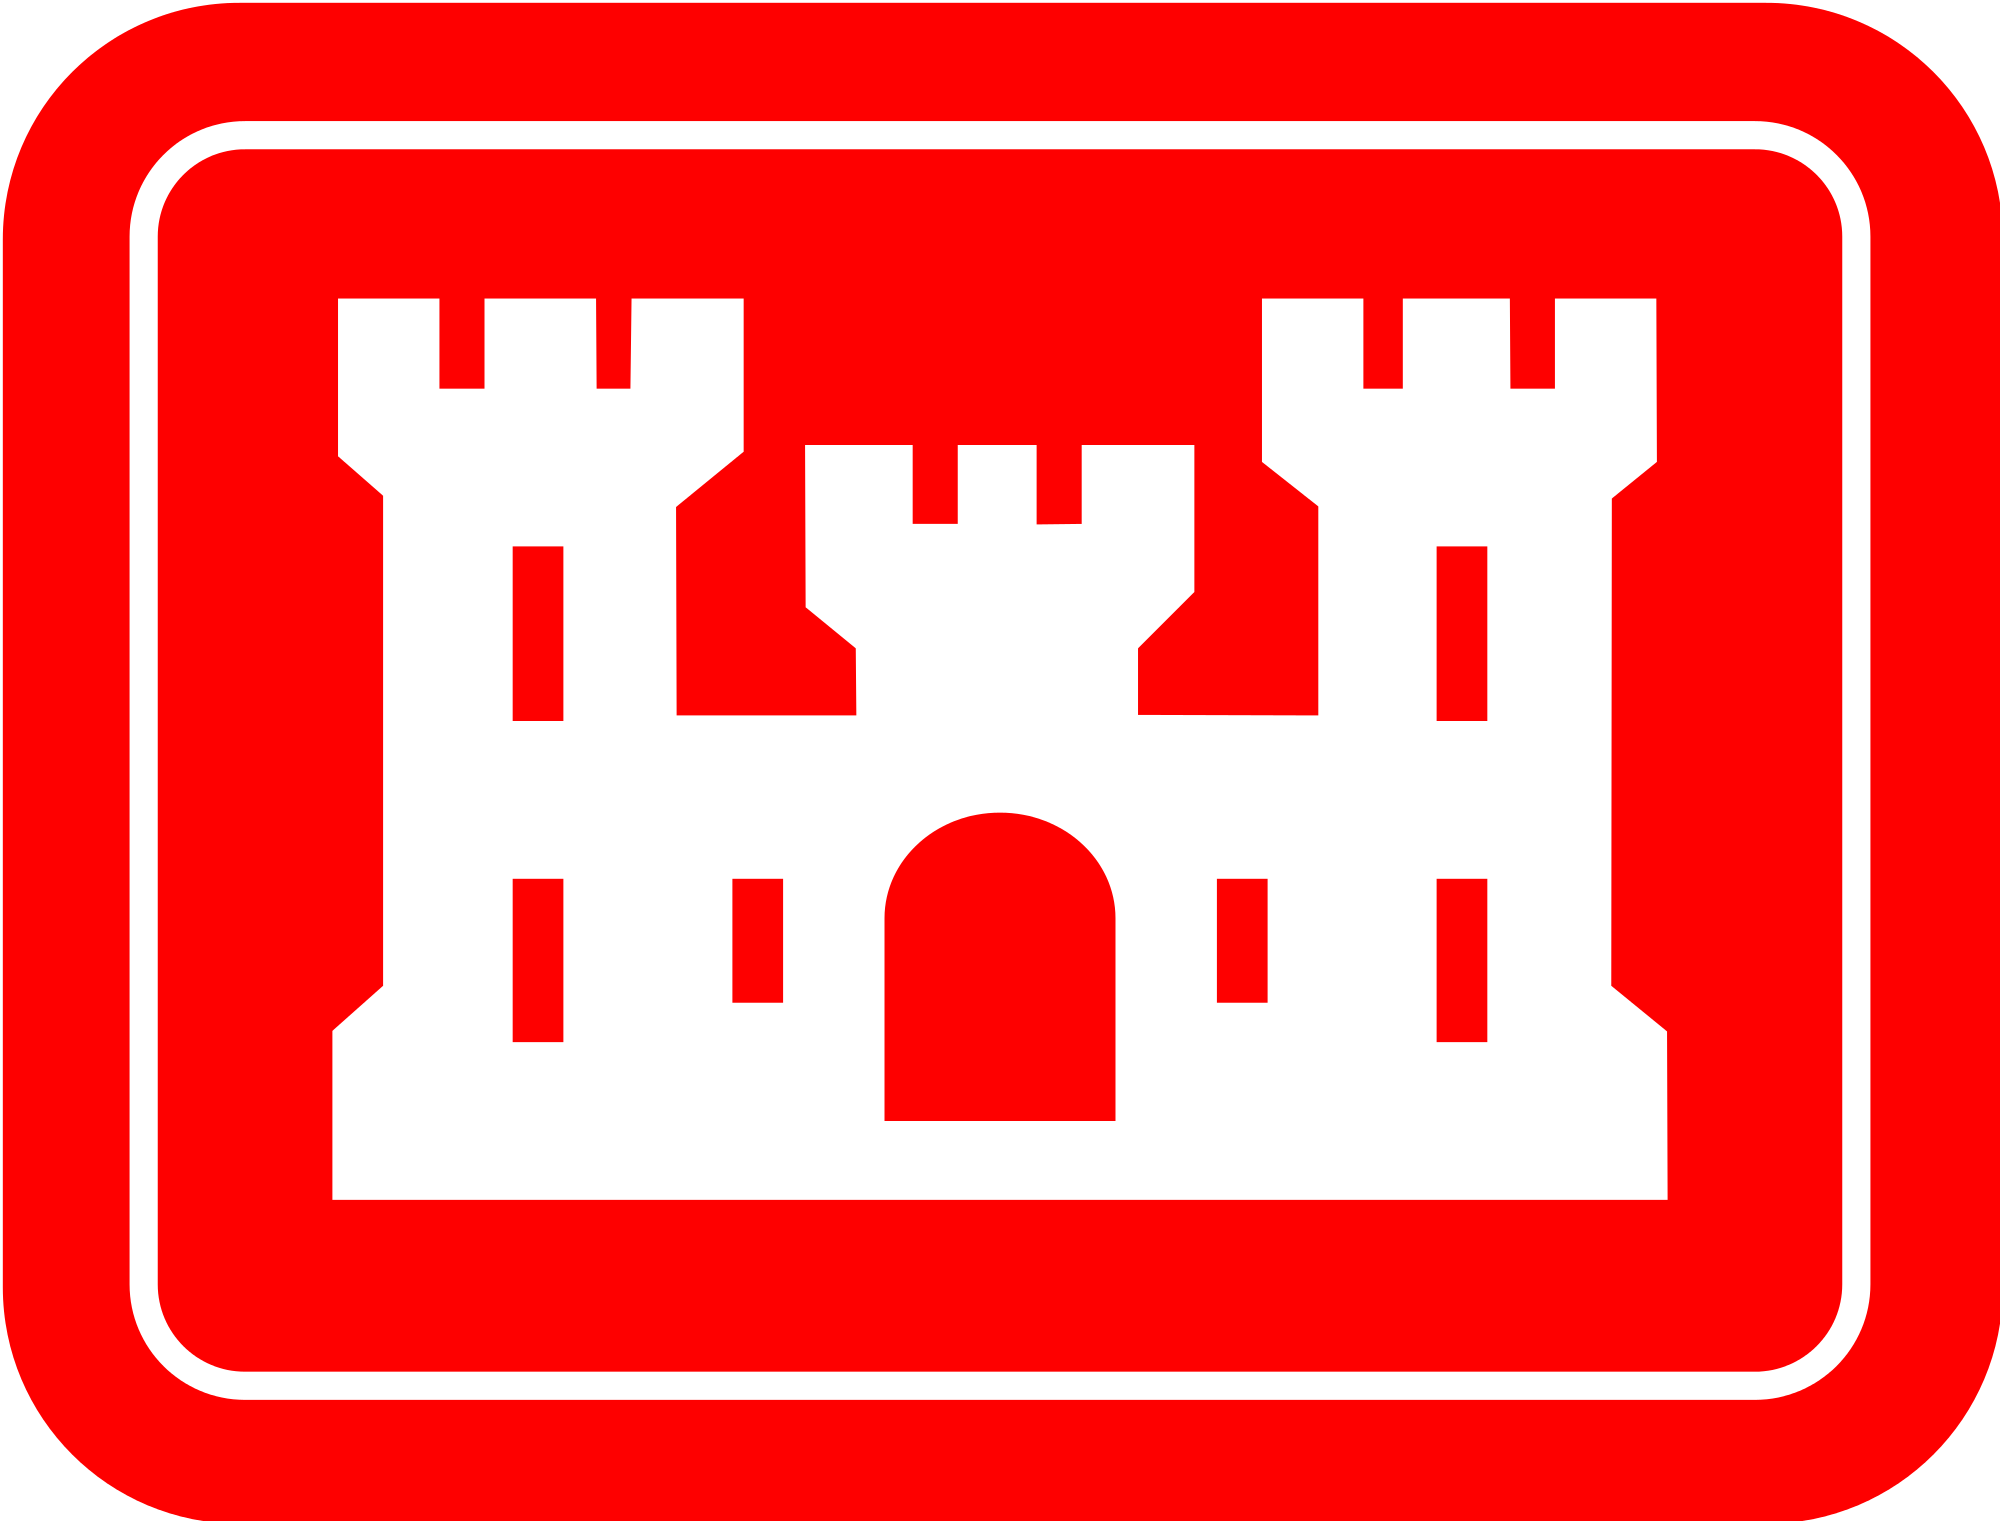 Fairfax Castle svg #20, Download drawings